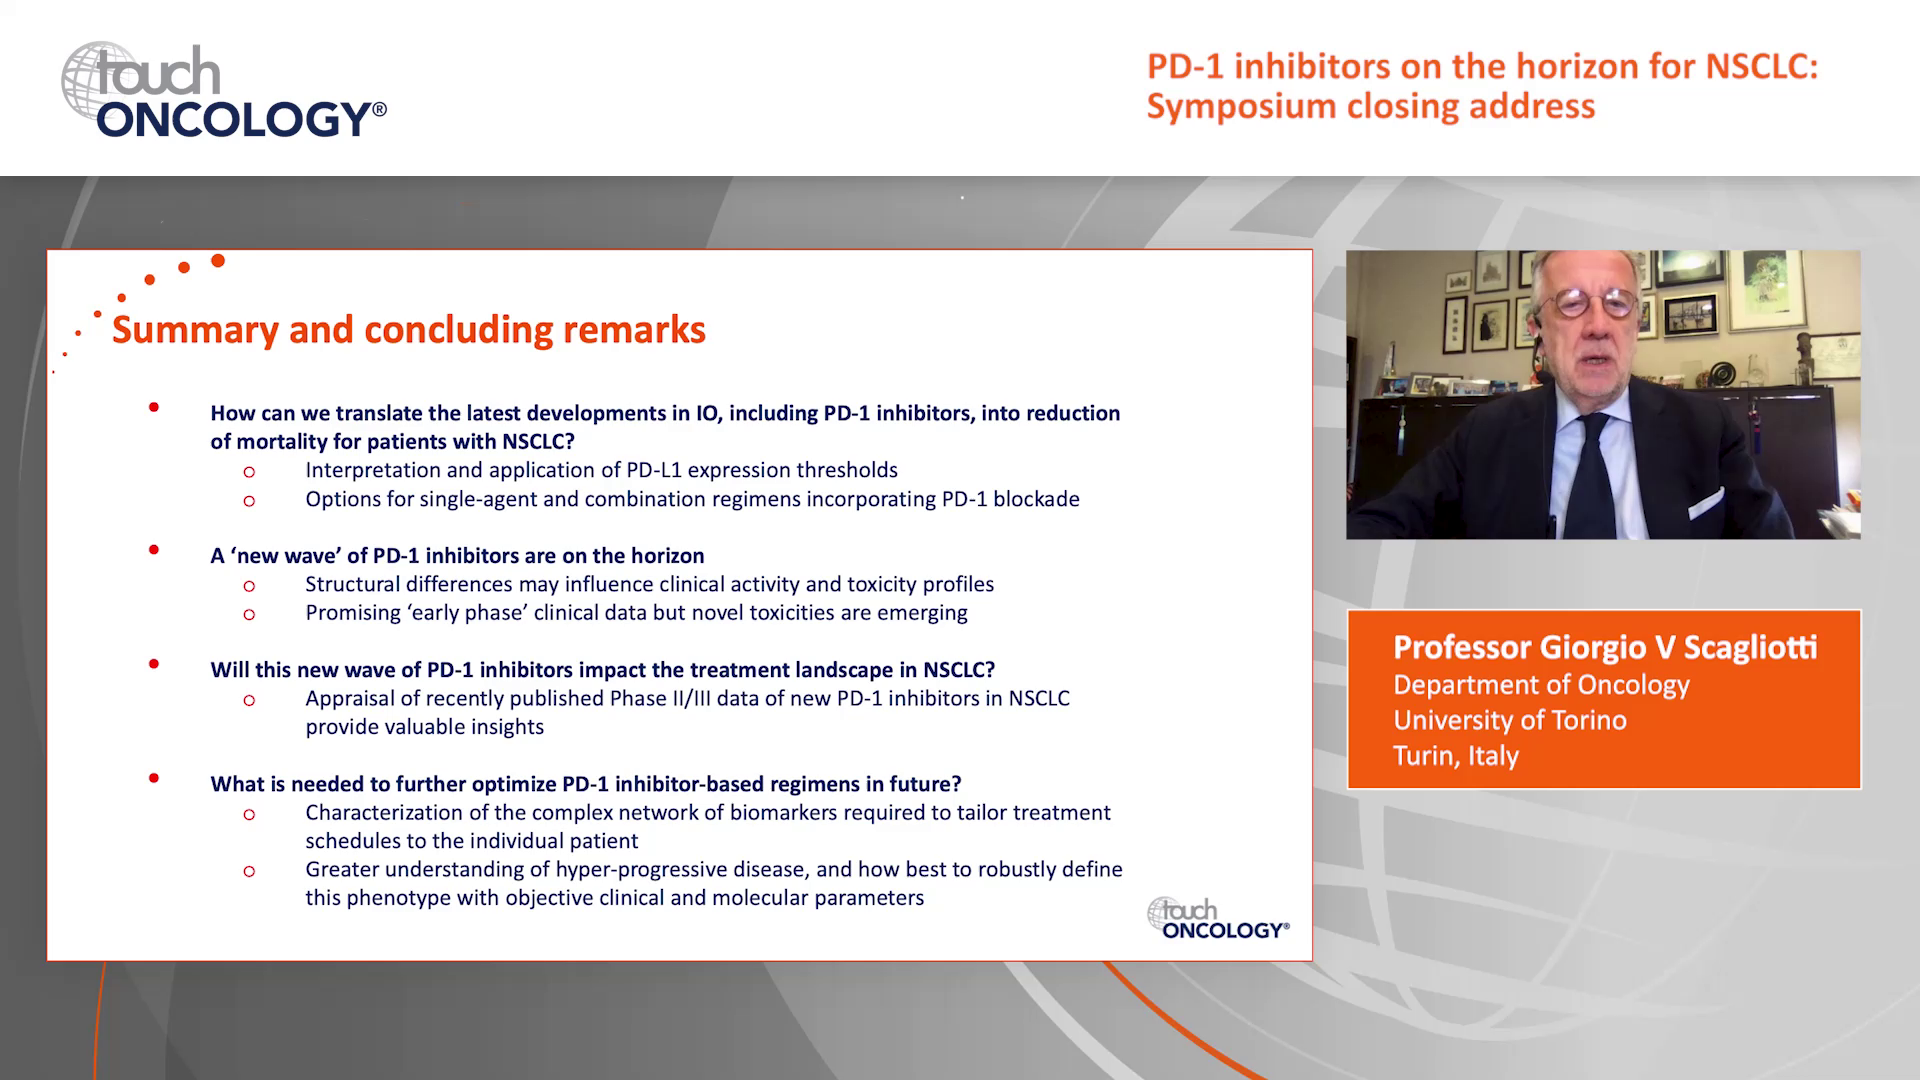 PD-1 inhibitors on the horizon for NSCLC: Symposium closing address